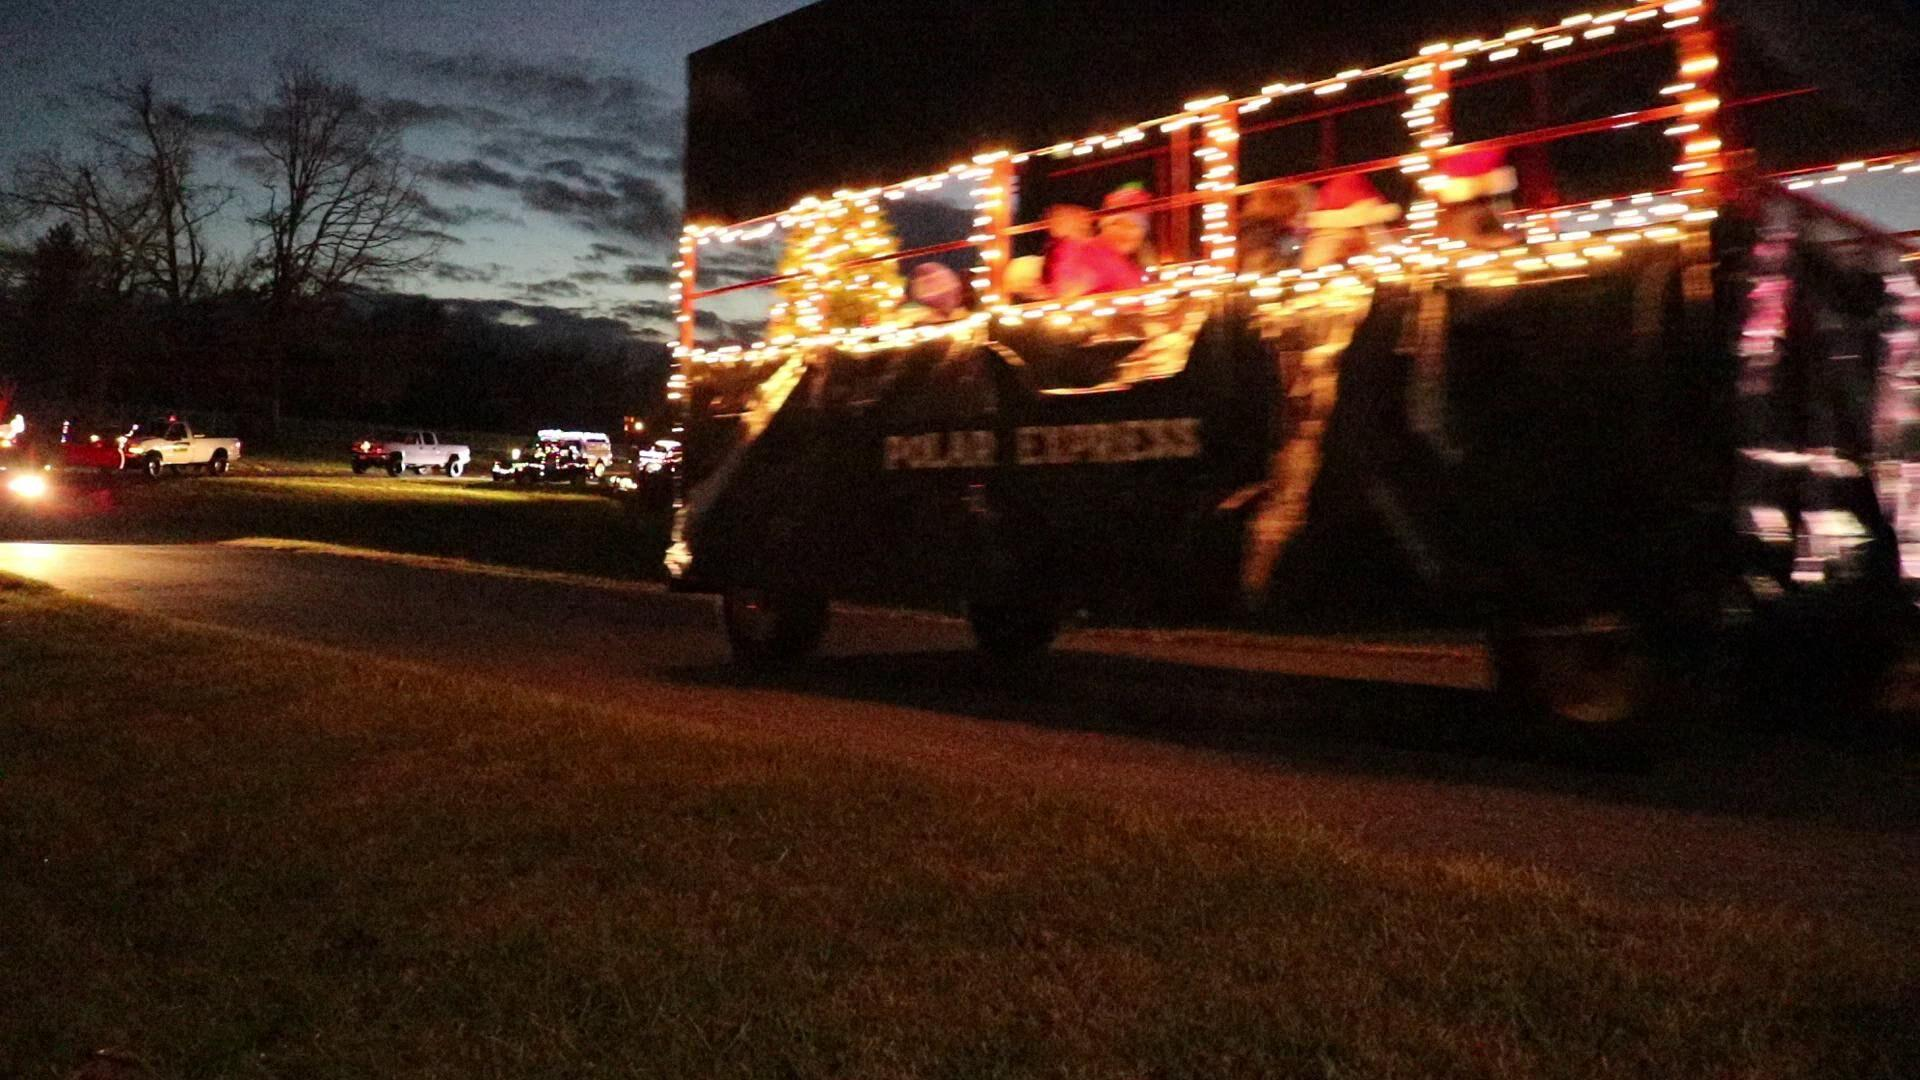 Grottoes Christmas Parade 2021 Watch Now Williams Brothers Tree And Lawn Service Mobile Christmas Parade Brings Joy To Participants Watchers Local News Newsvirginian Com